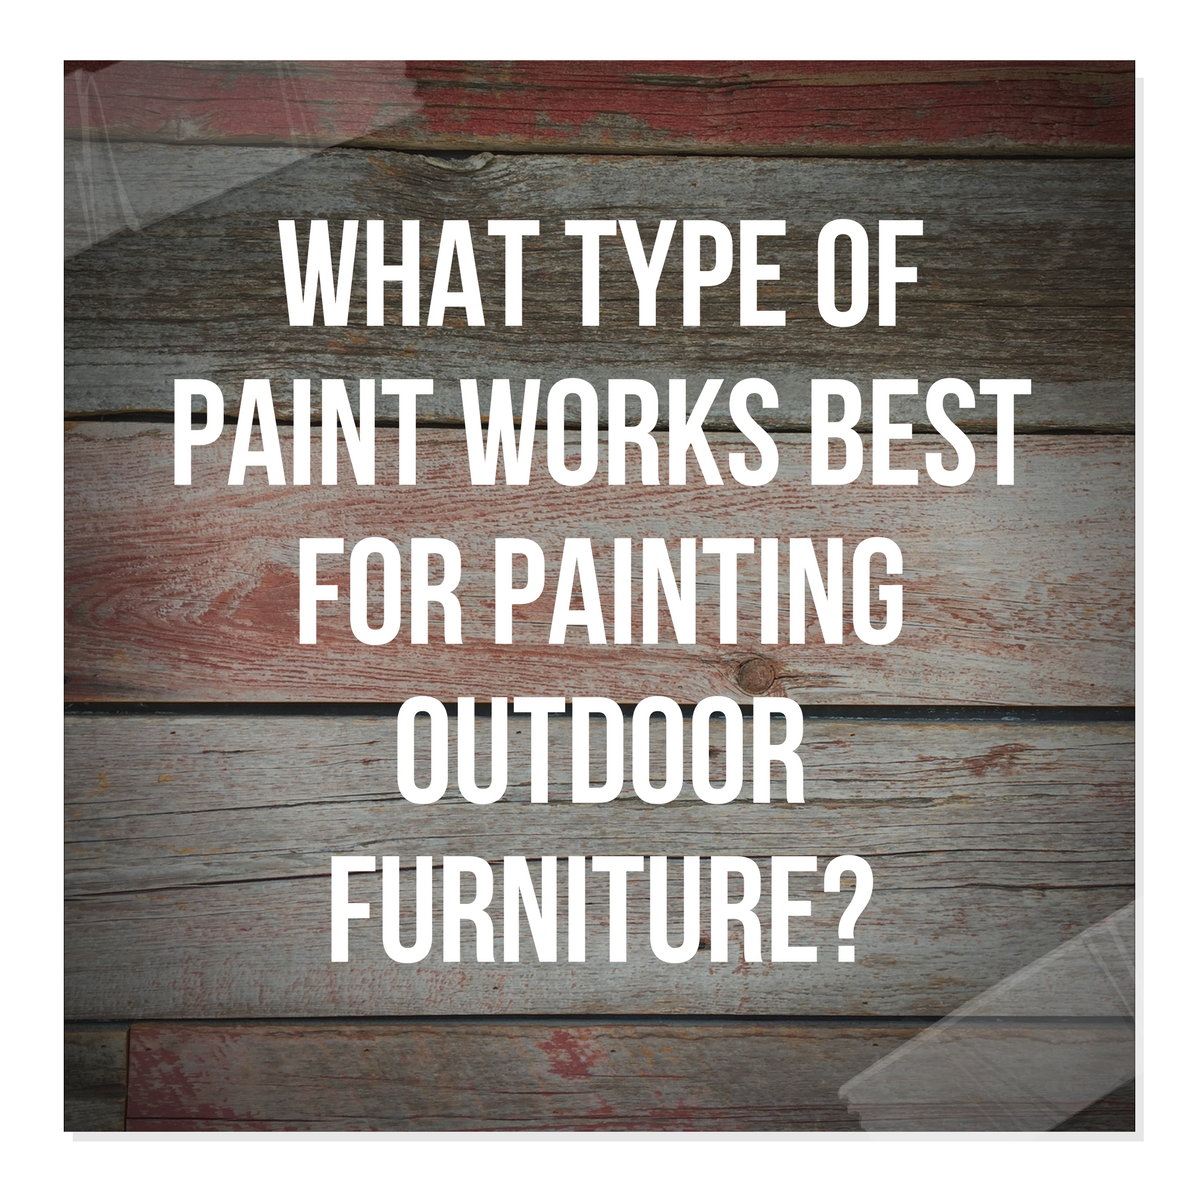 What Type of Paint Works Best For Painting Outdoor Furniture?